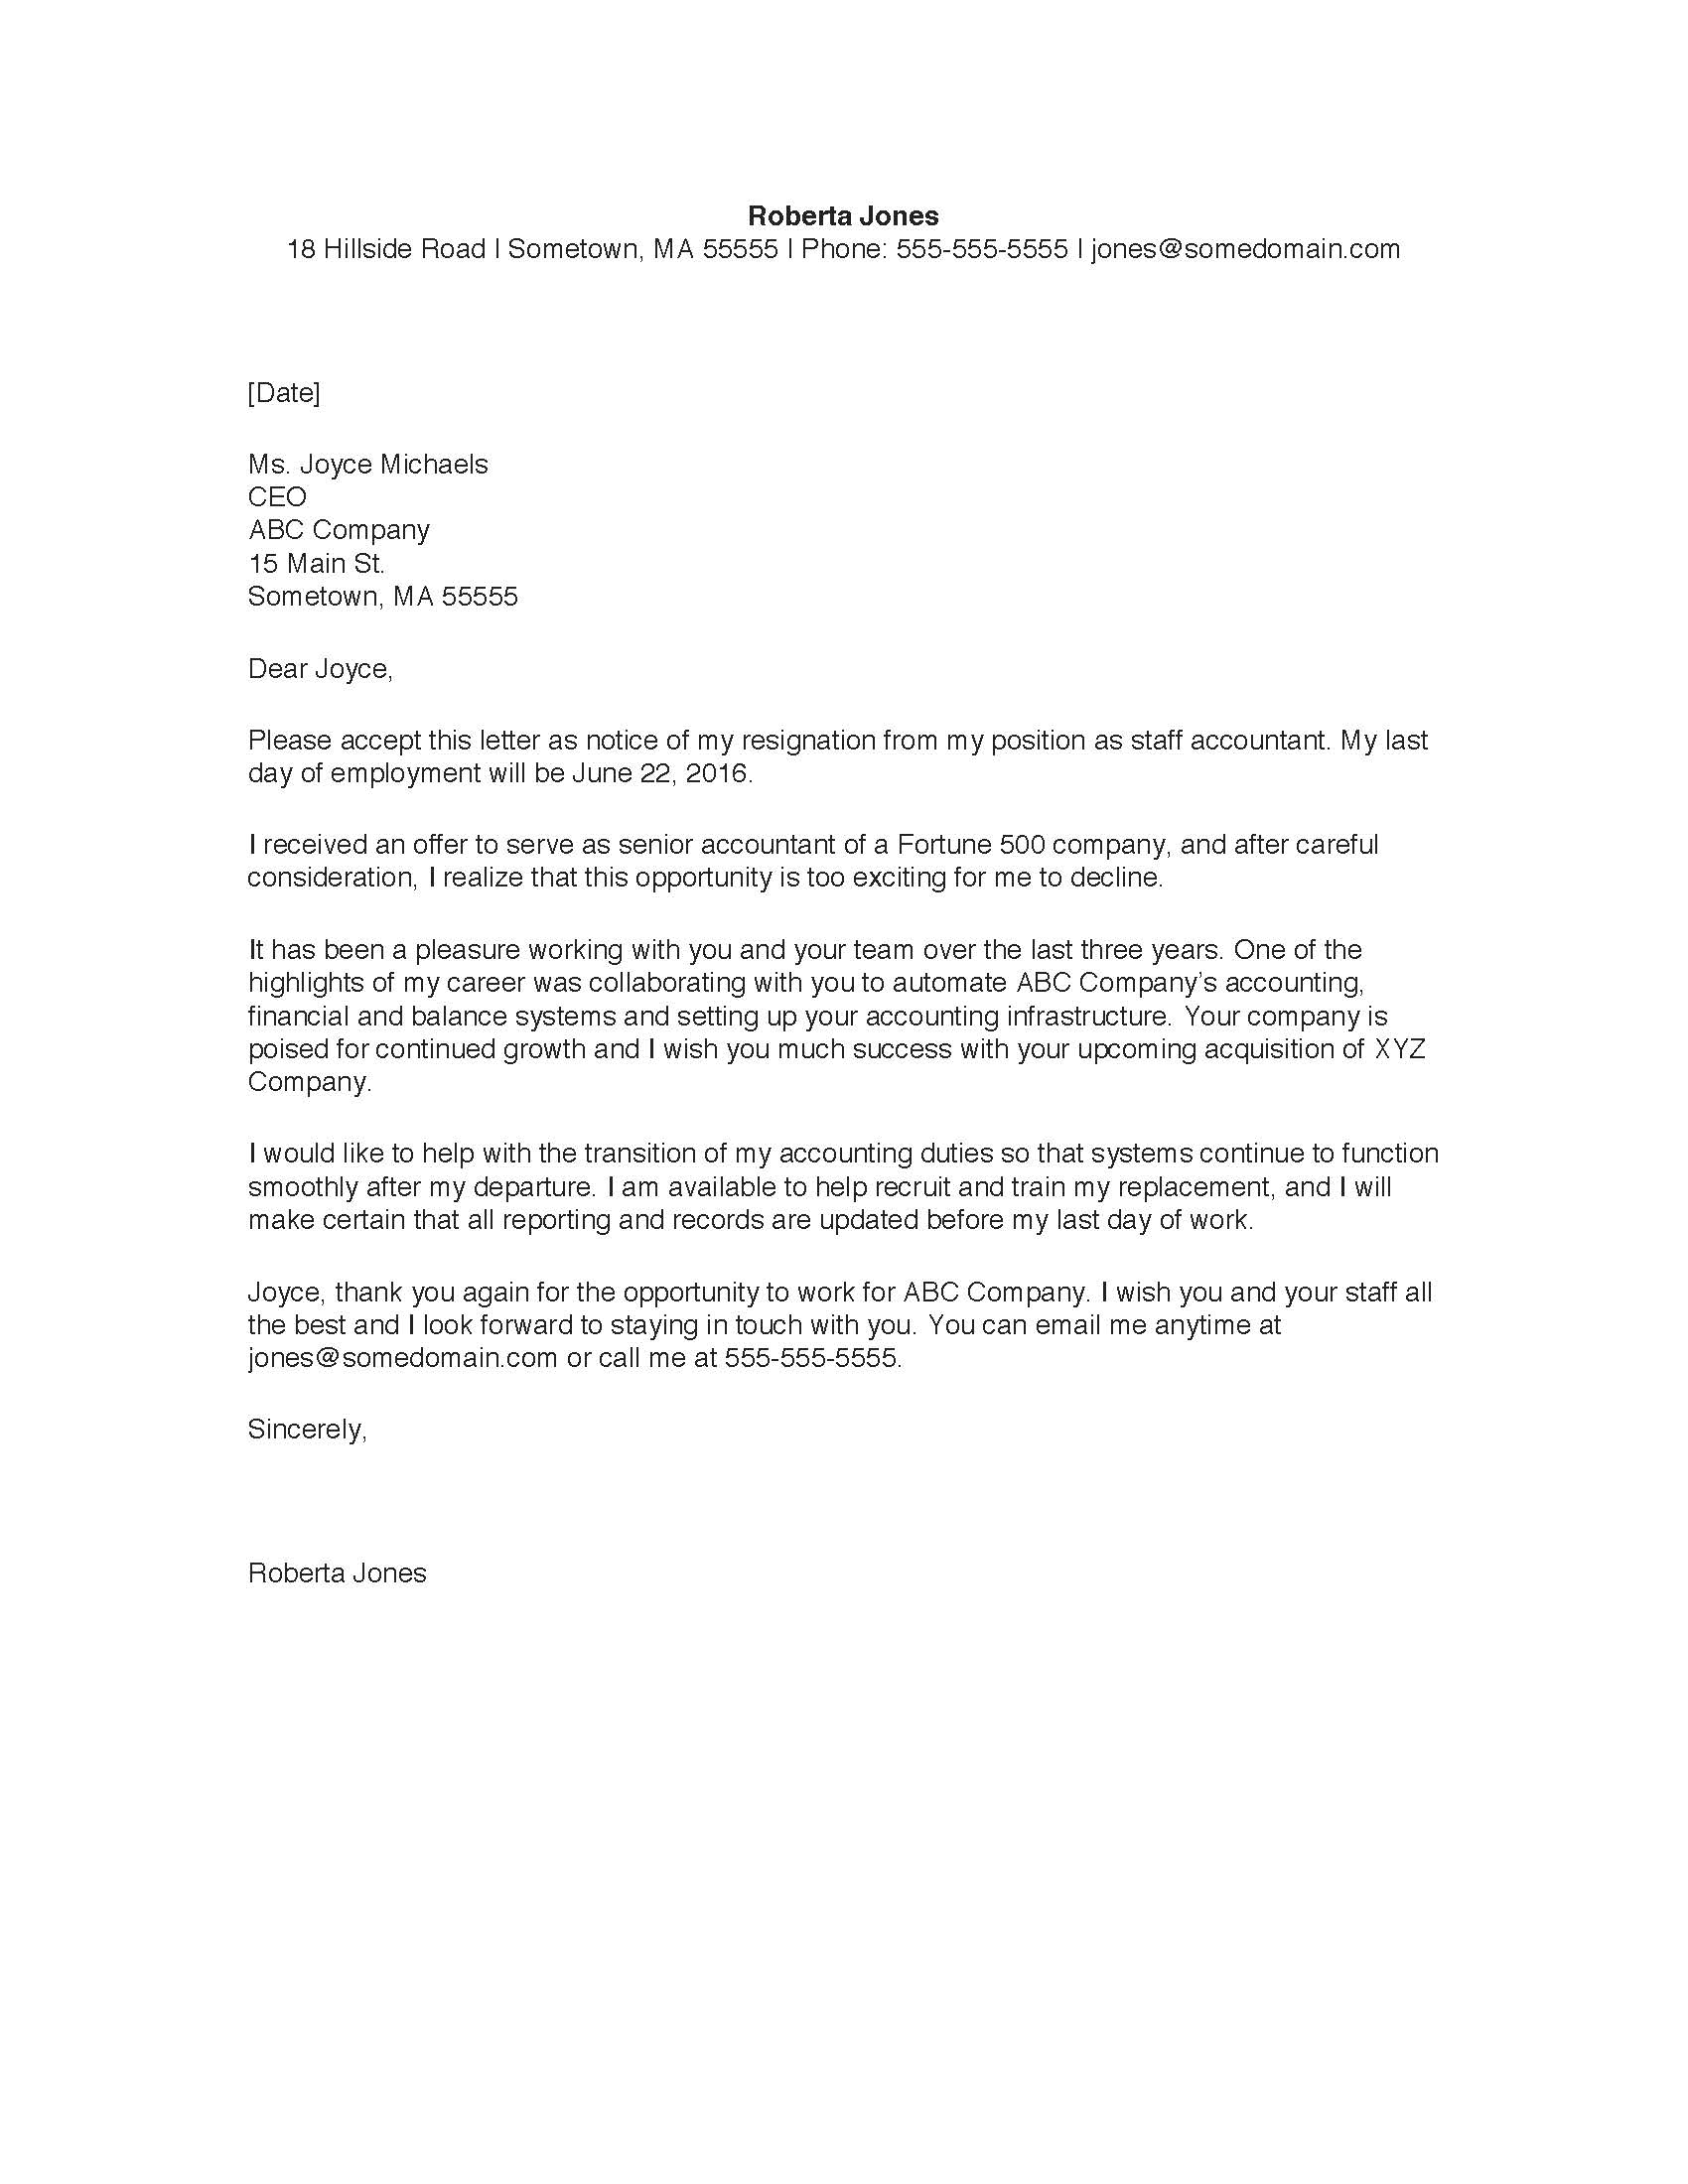 sample professional resignation letter - Leon.escapers.co